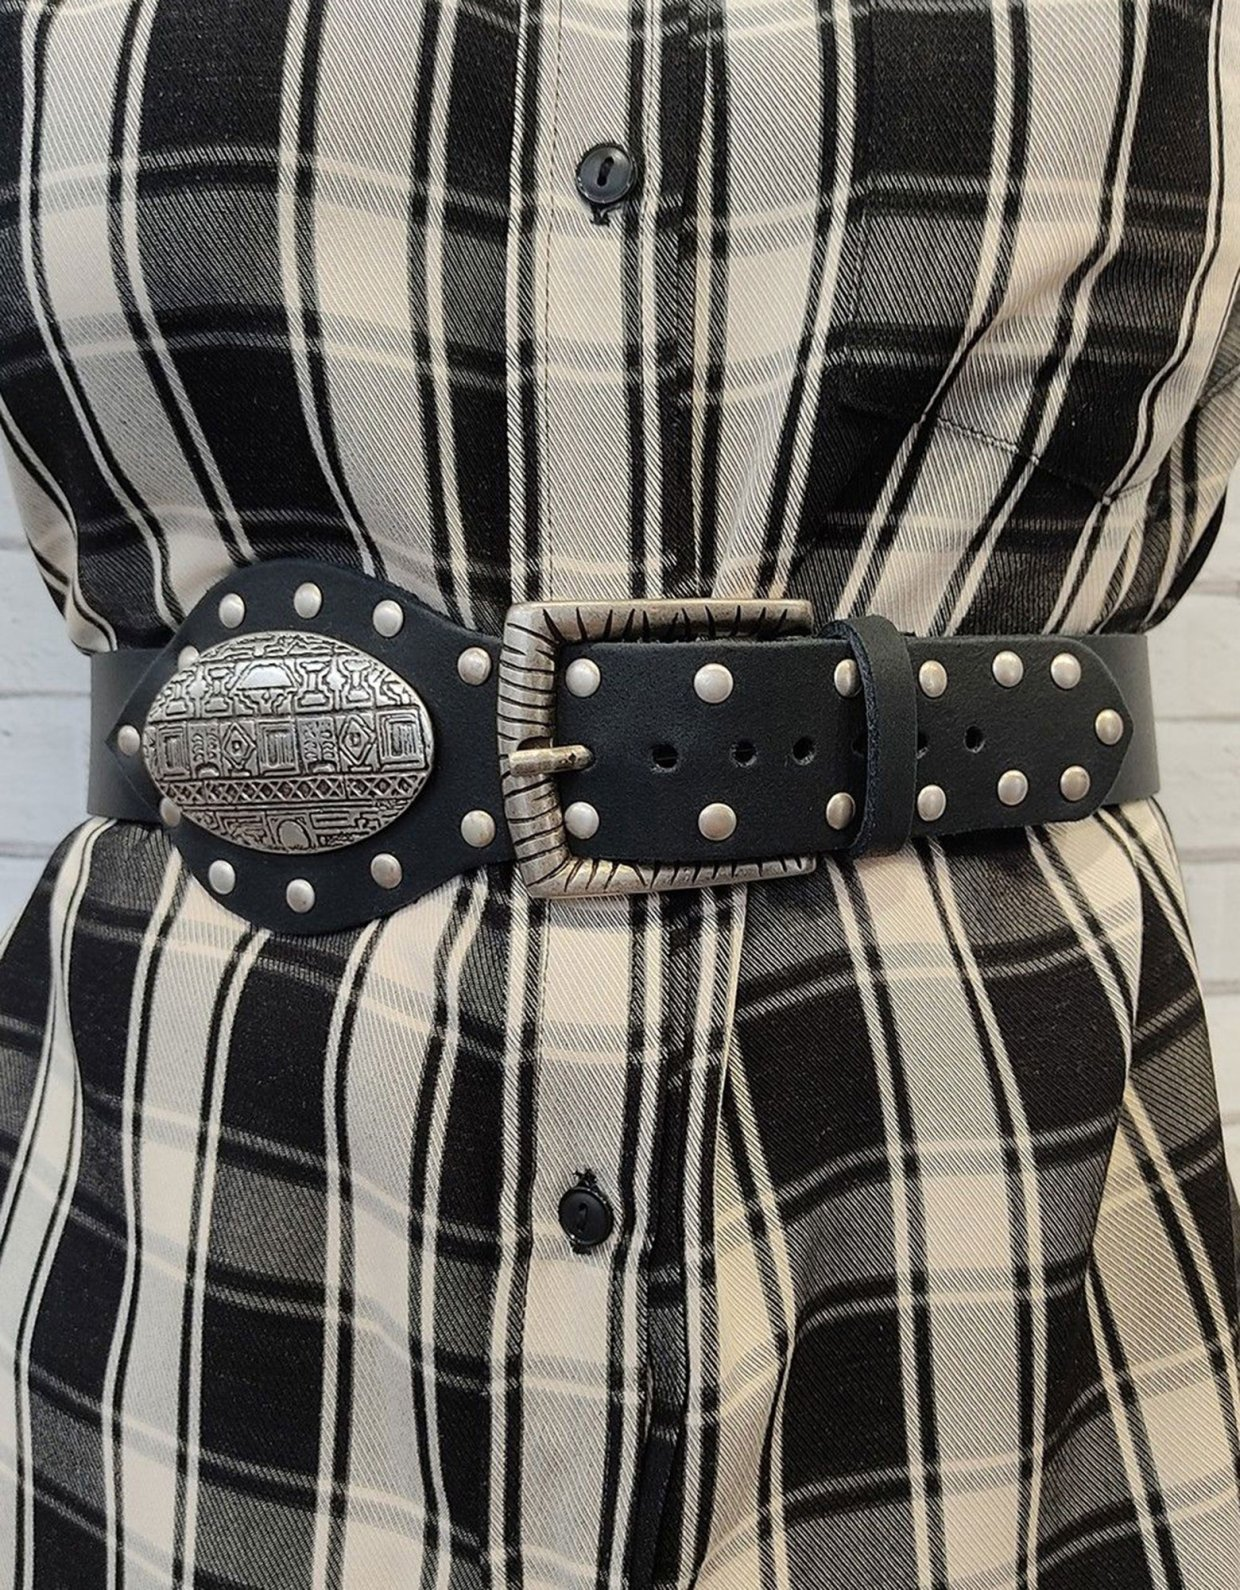 Peace & Chaos Serenity belt black